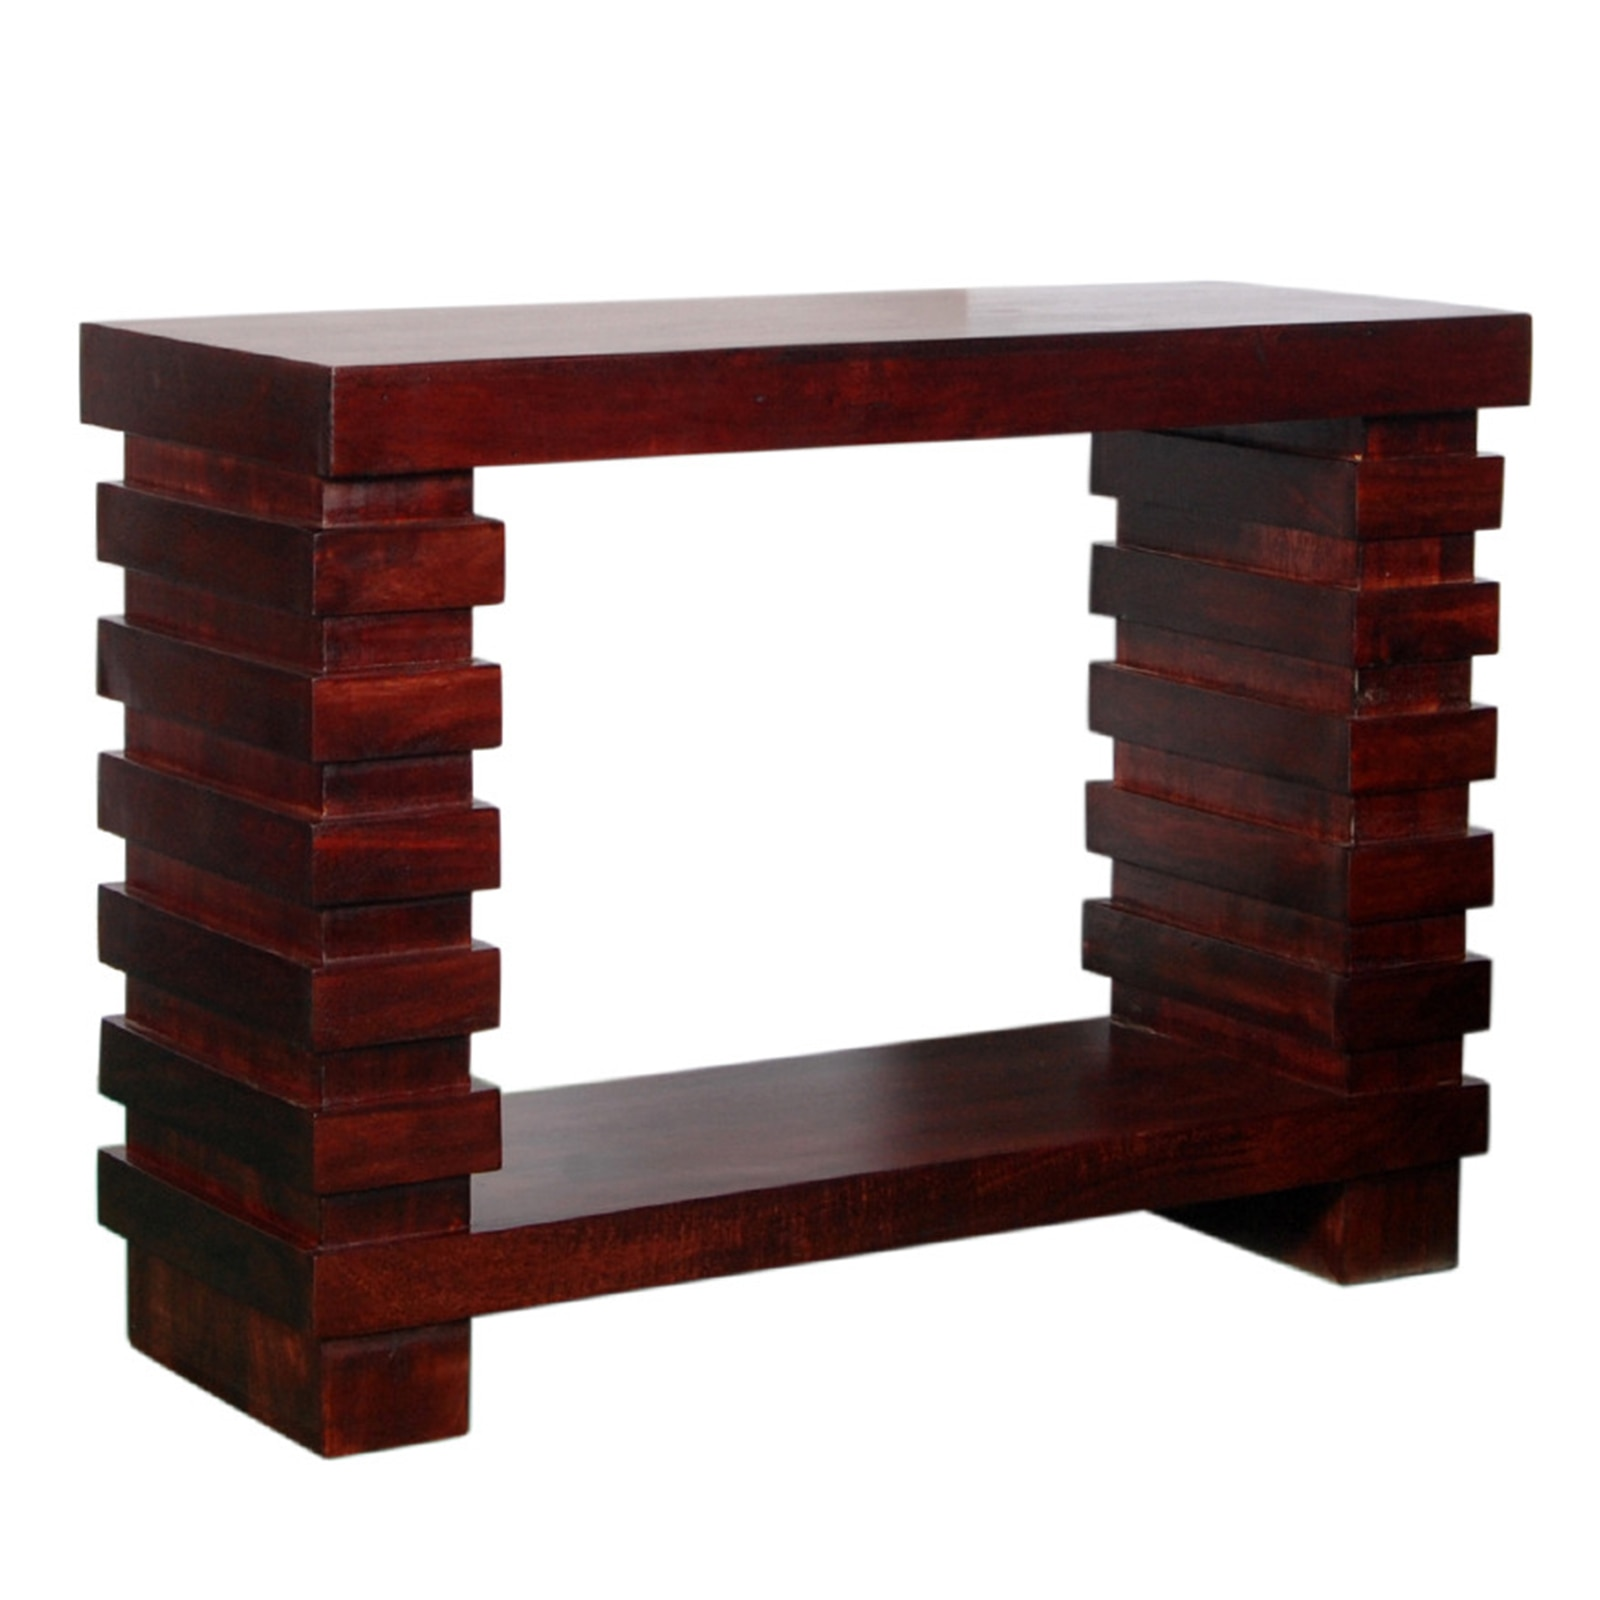 Solid sheesham wood console table solid wood console table entry solid sheesham wood console table solid wood console table entry way console table furniture online custom geotapseo Image collections